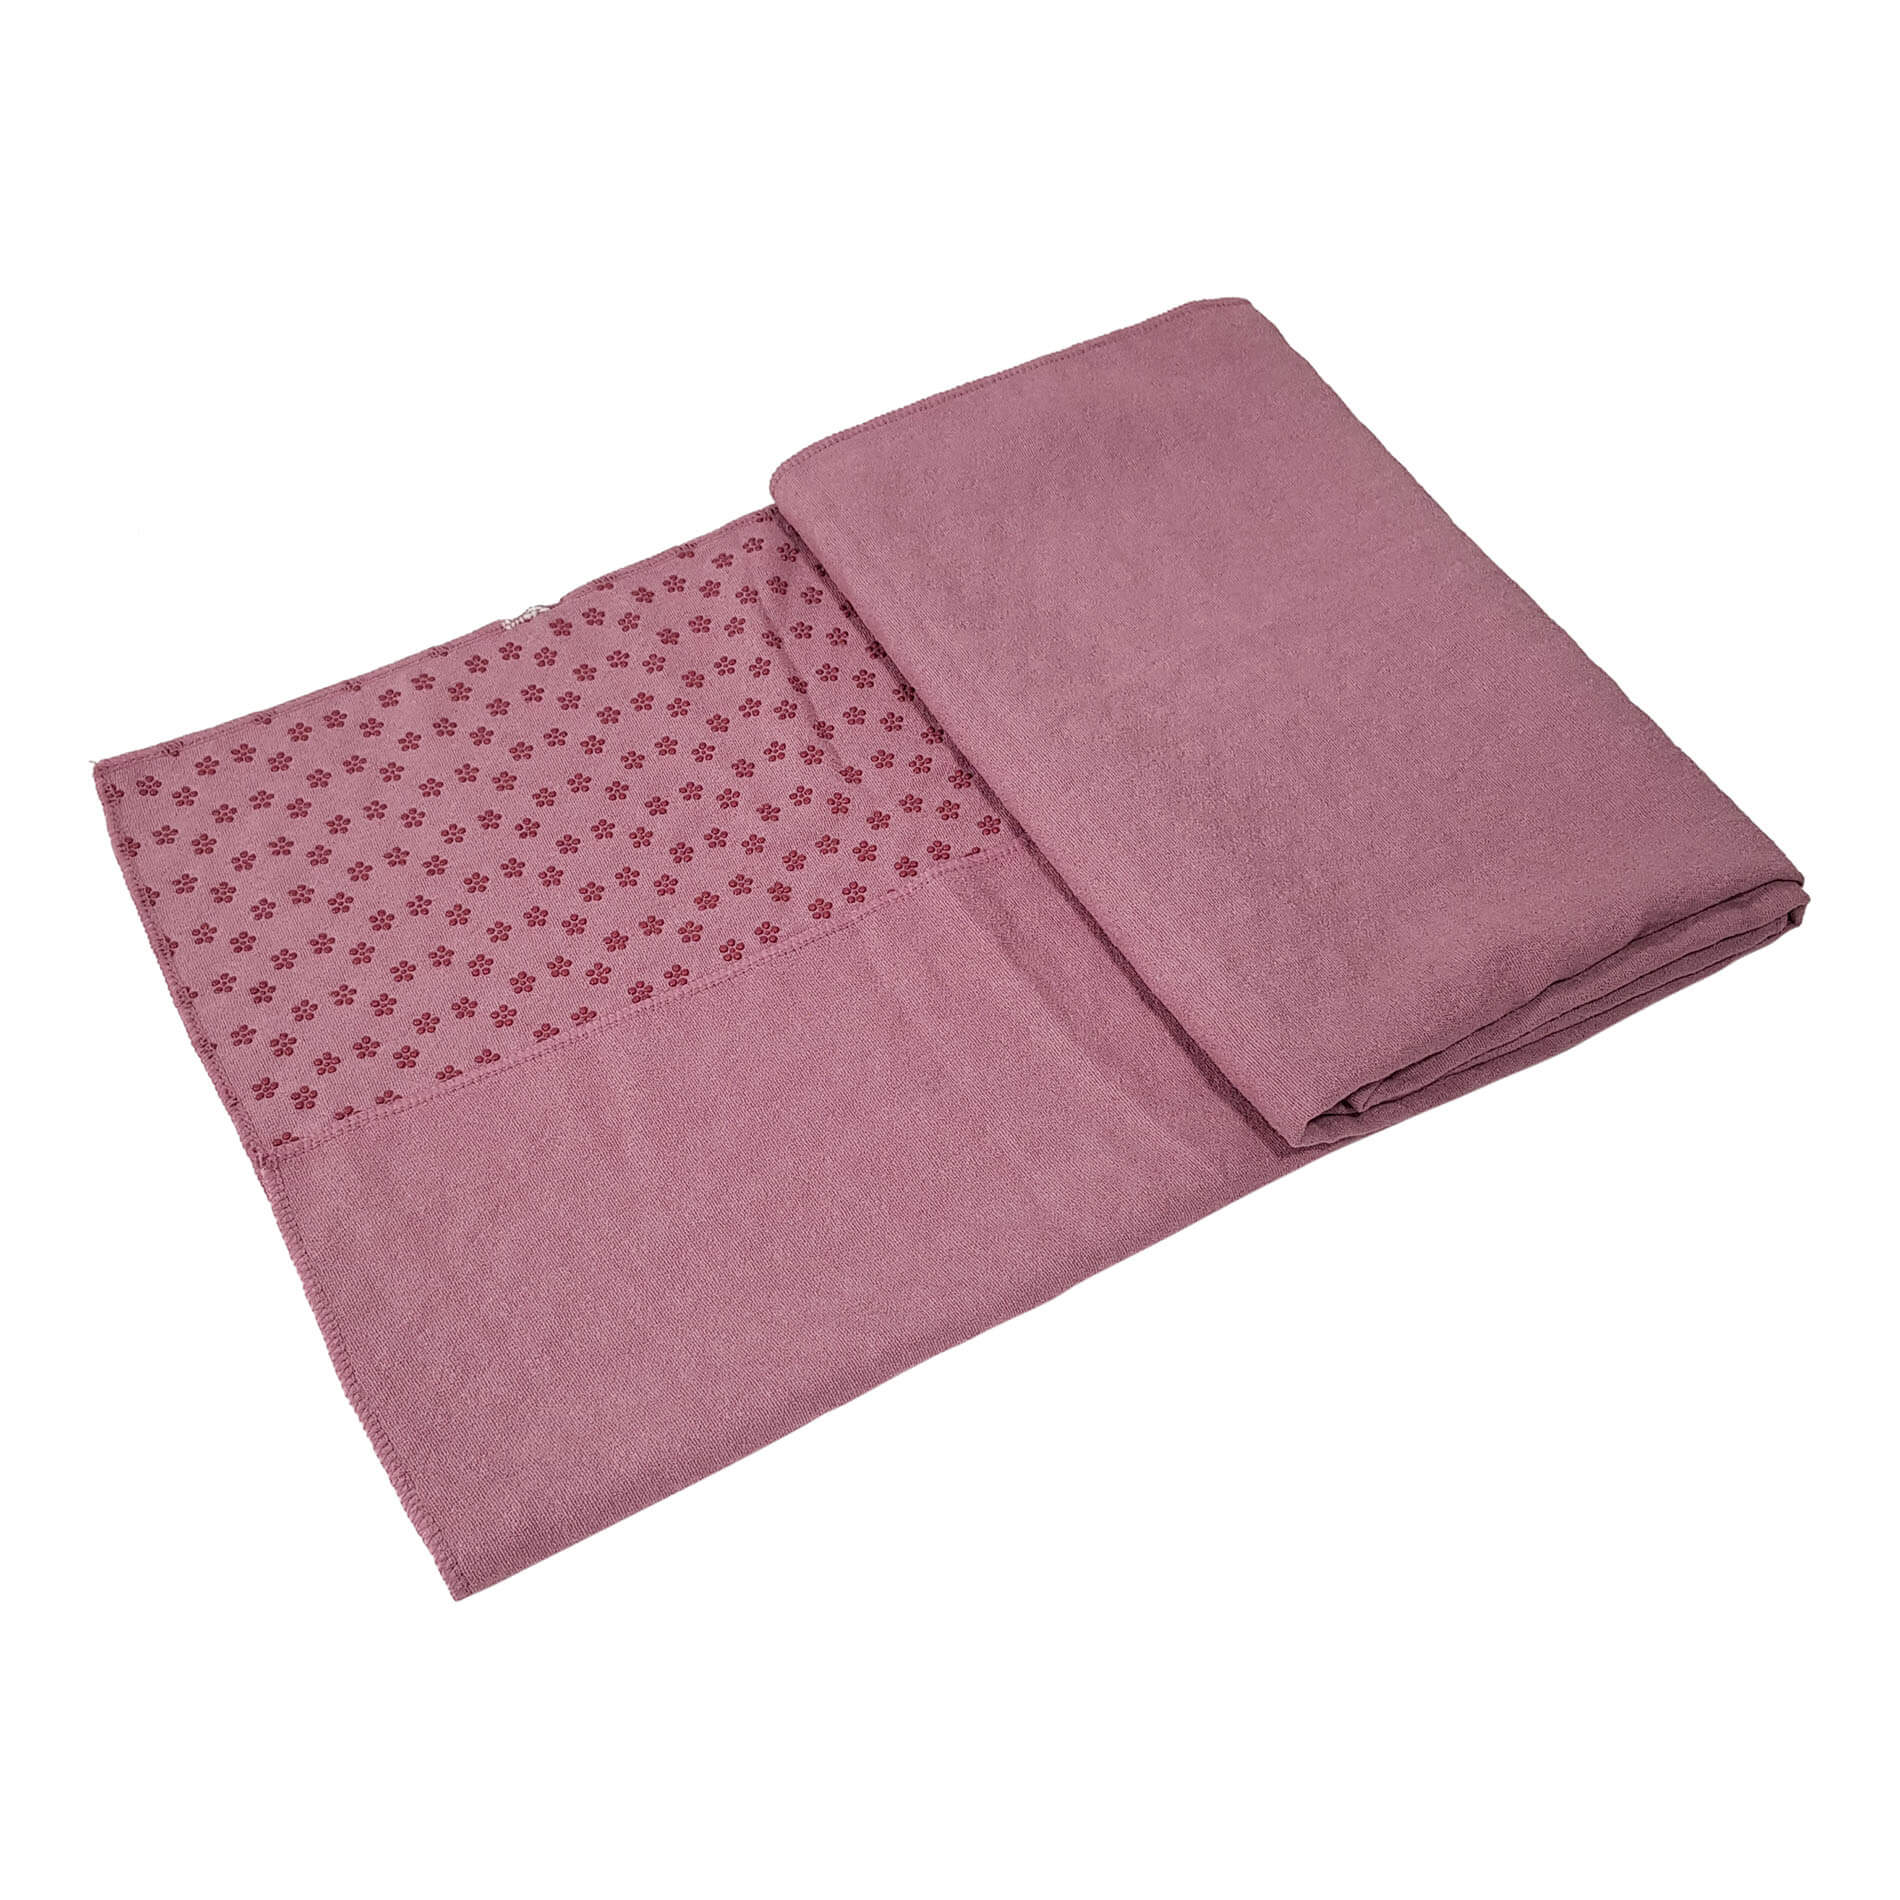 Yoga Towel 180-63 cm With Carry Bag